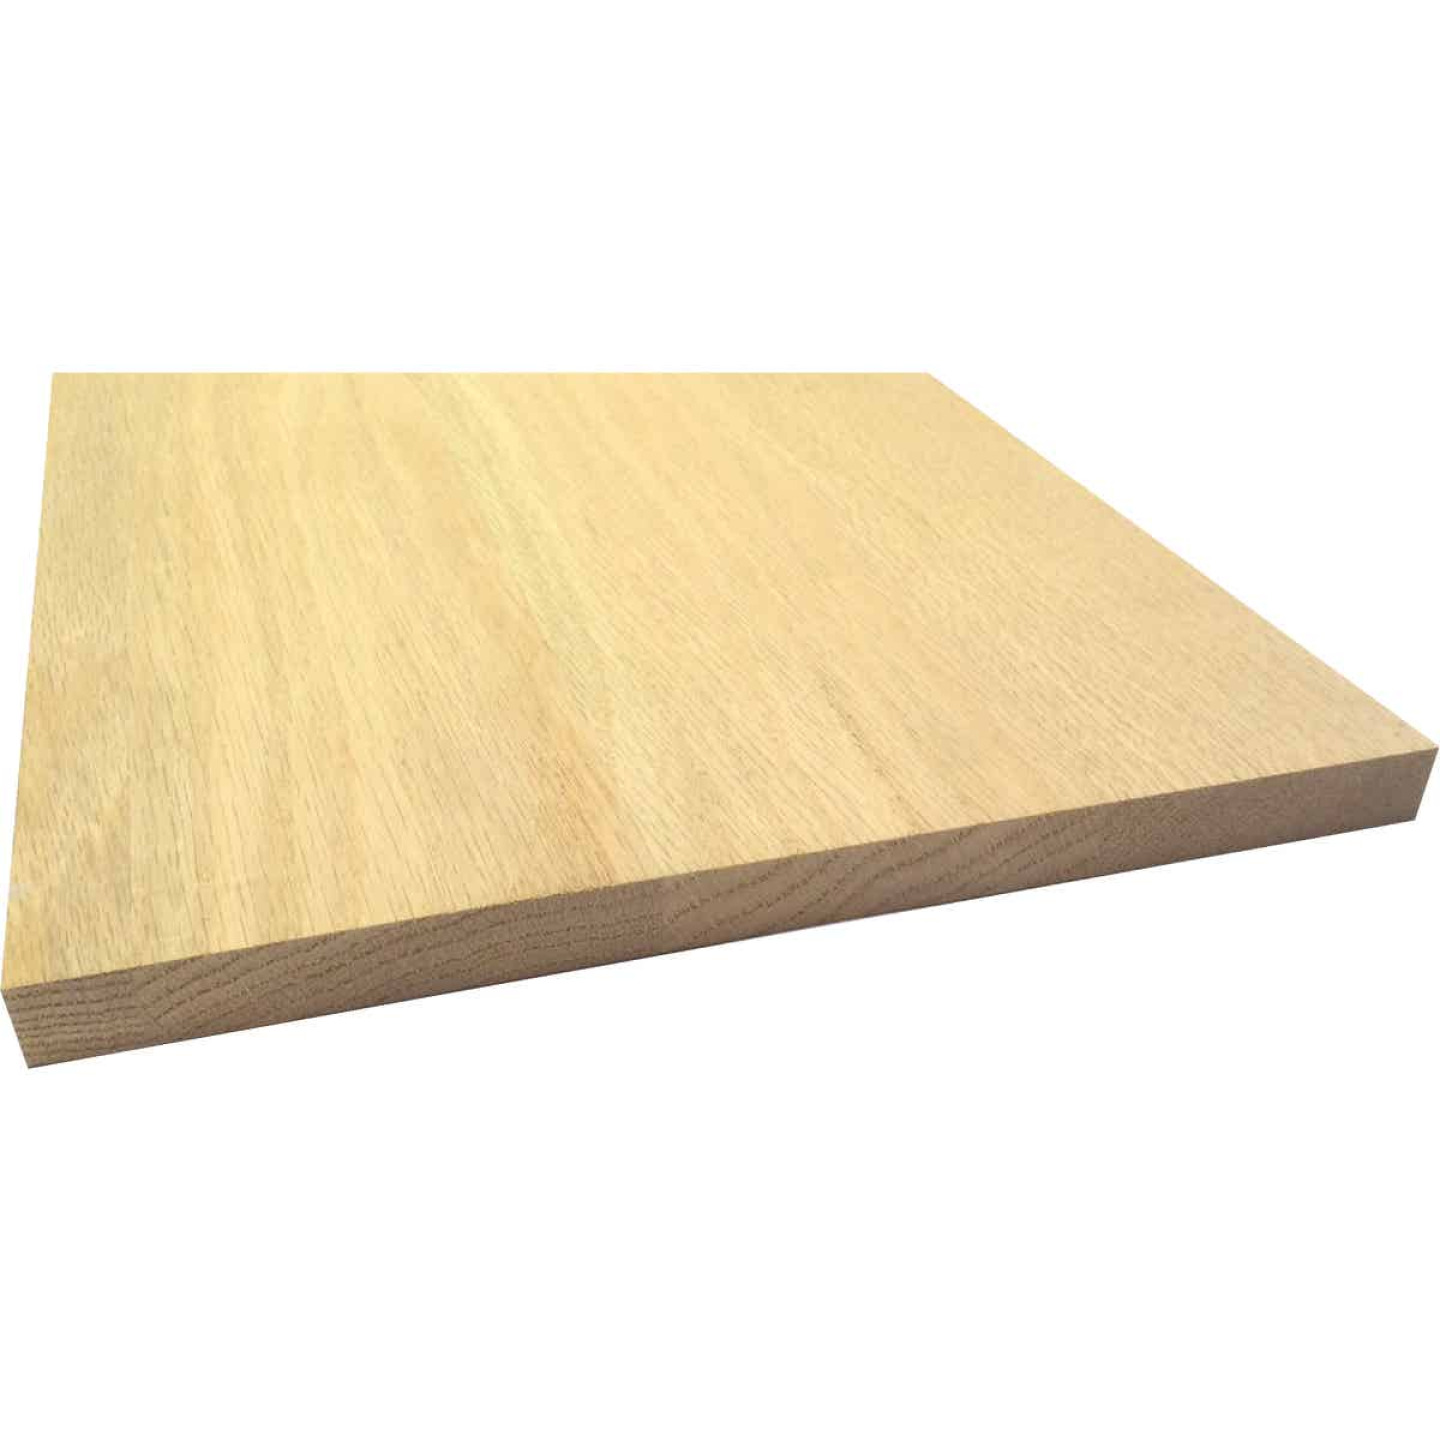 Waddell 1 In. x 12 In. x 8 Ft. Red Oak Board Image 1